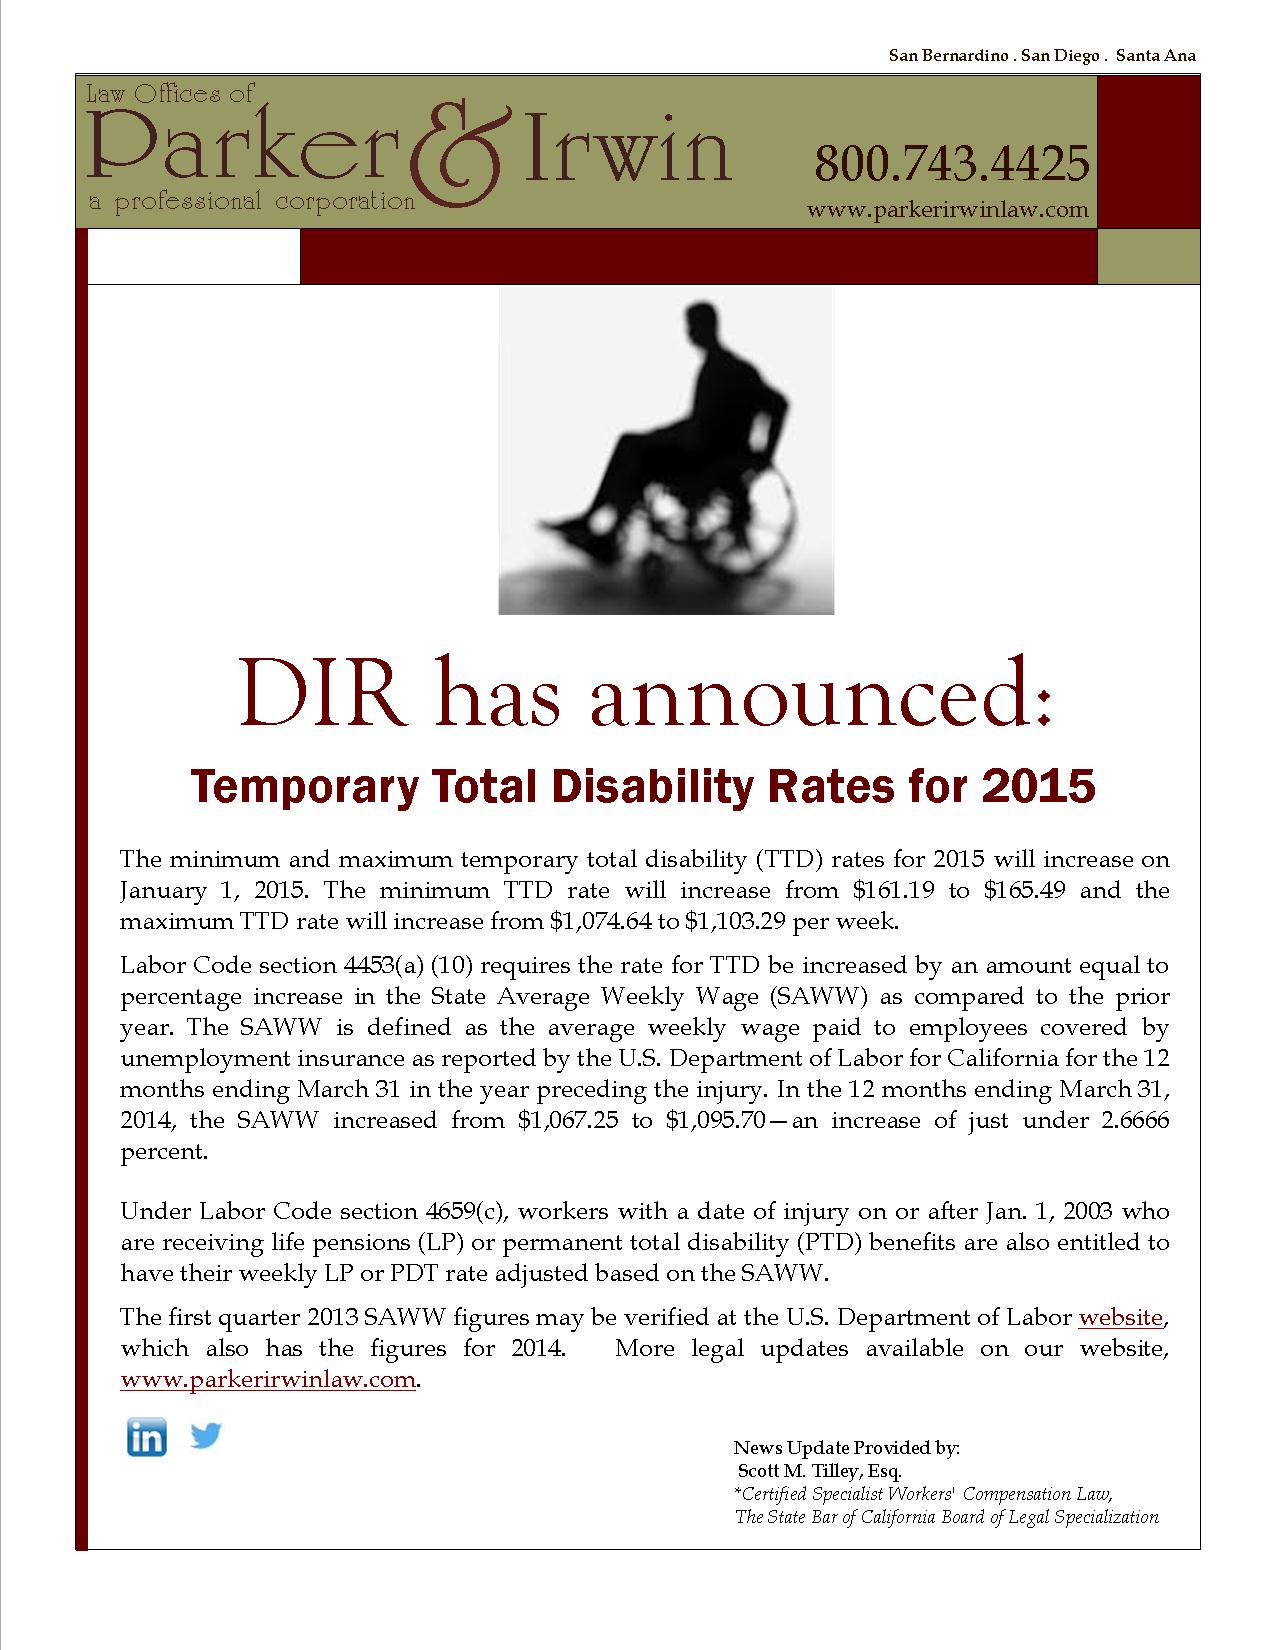 Dir Has Announced Temporary Total Disability Rates For